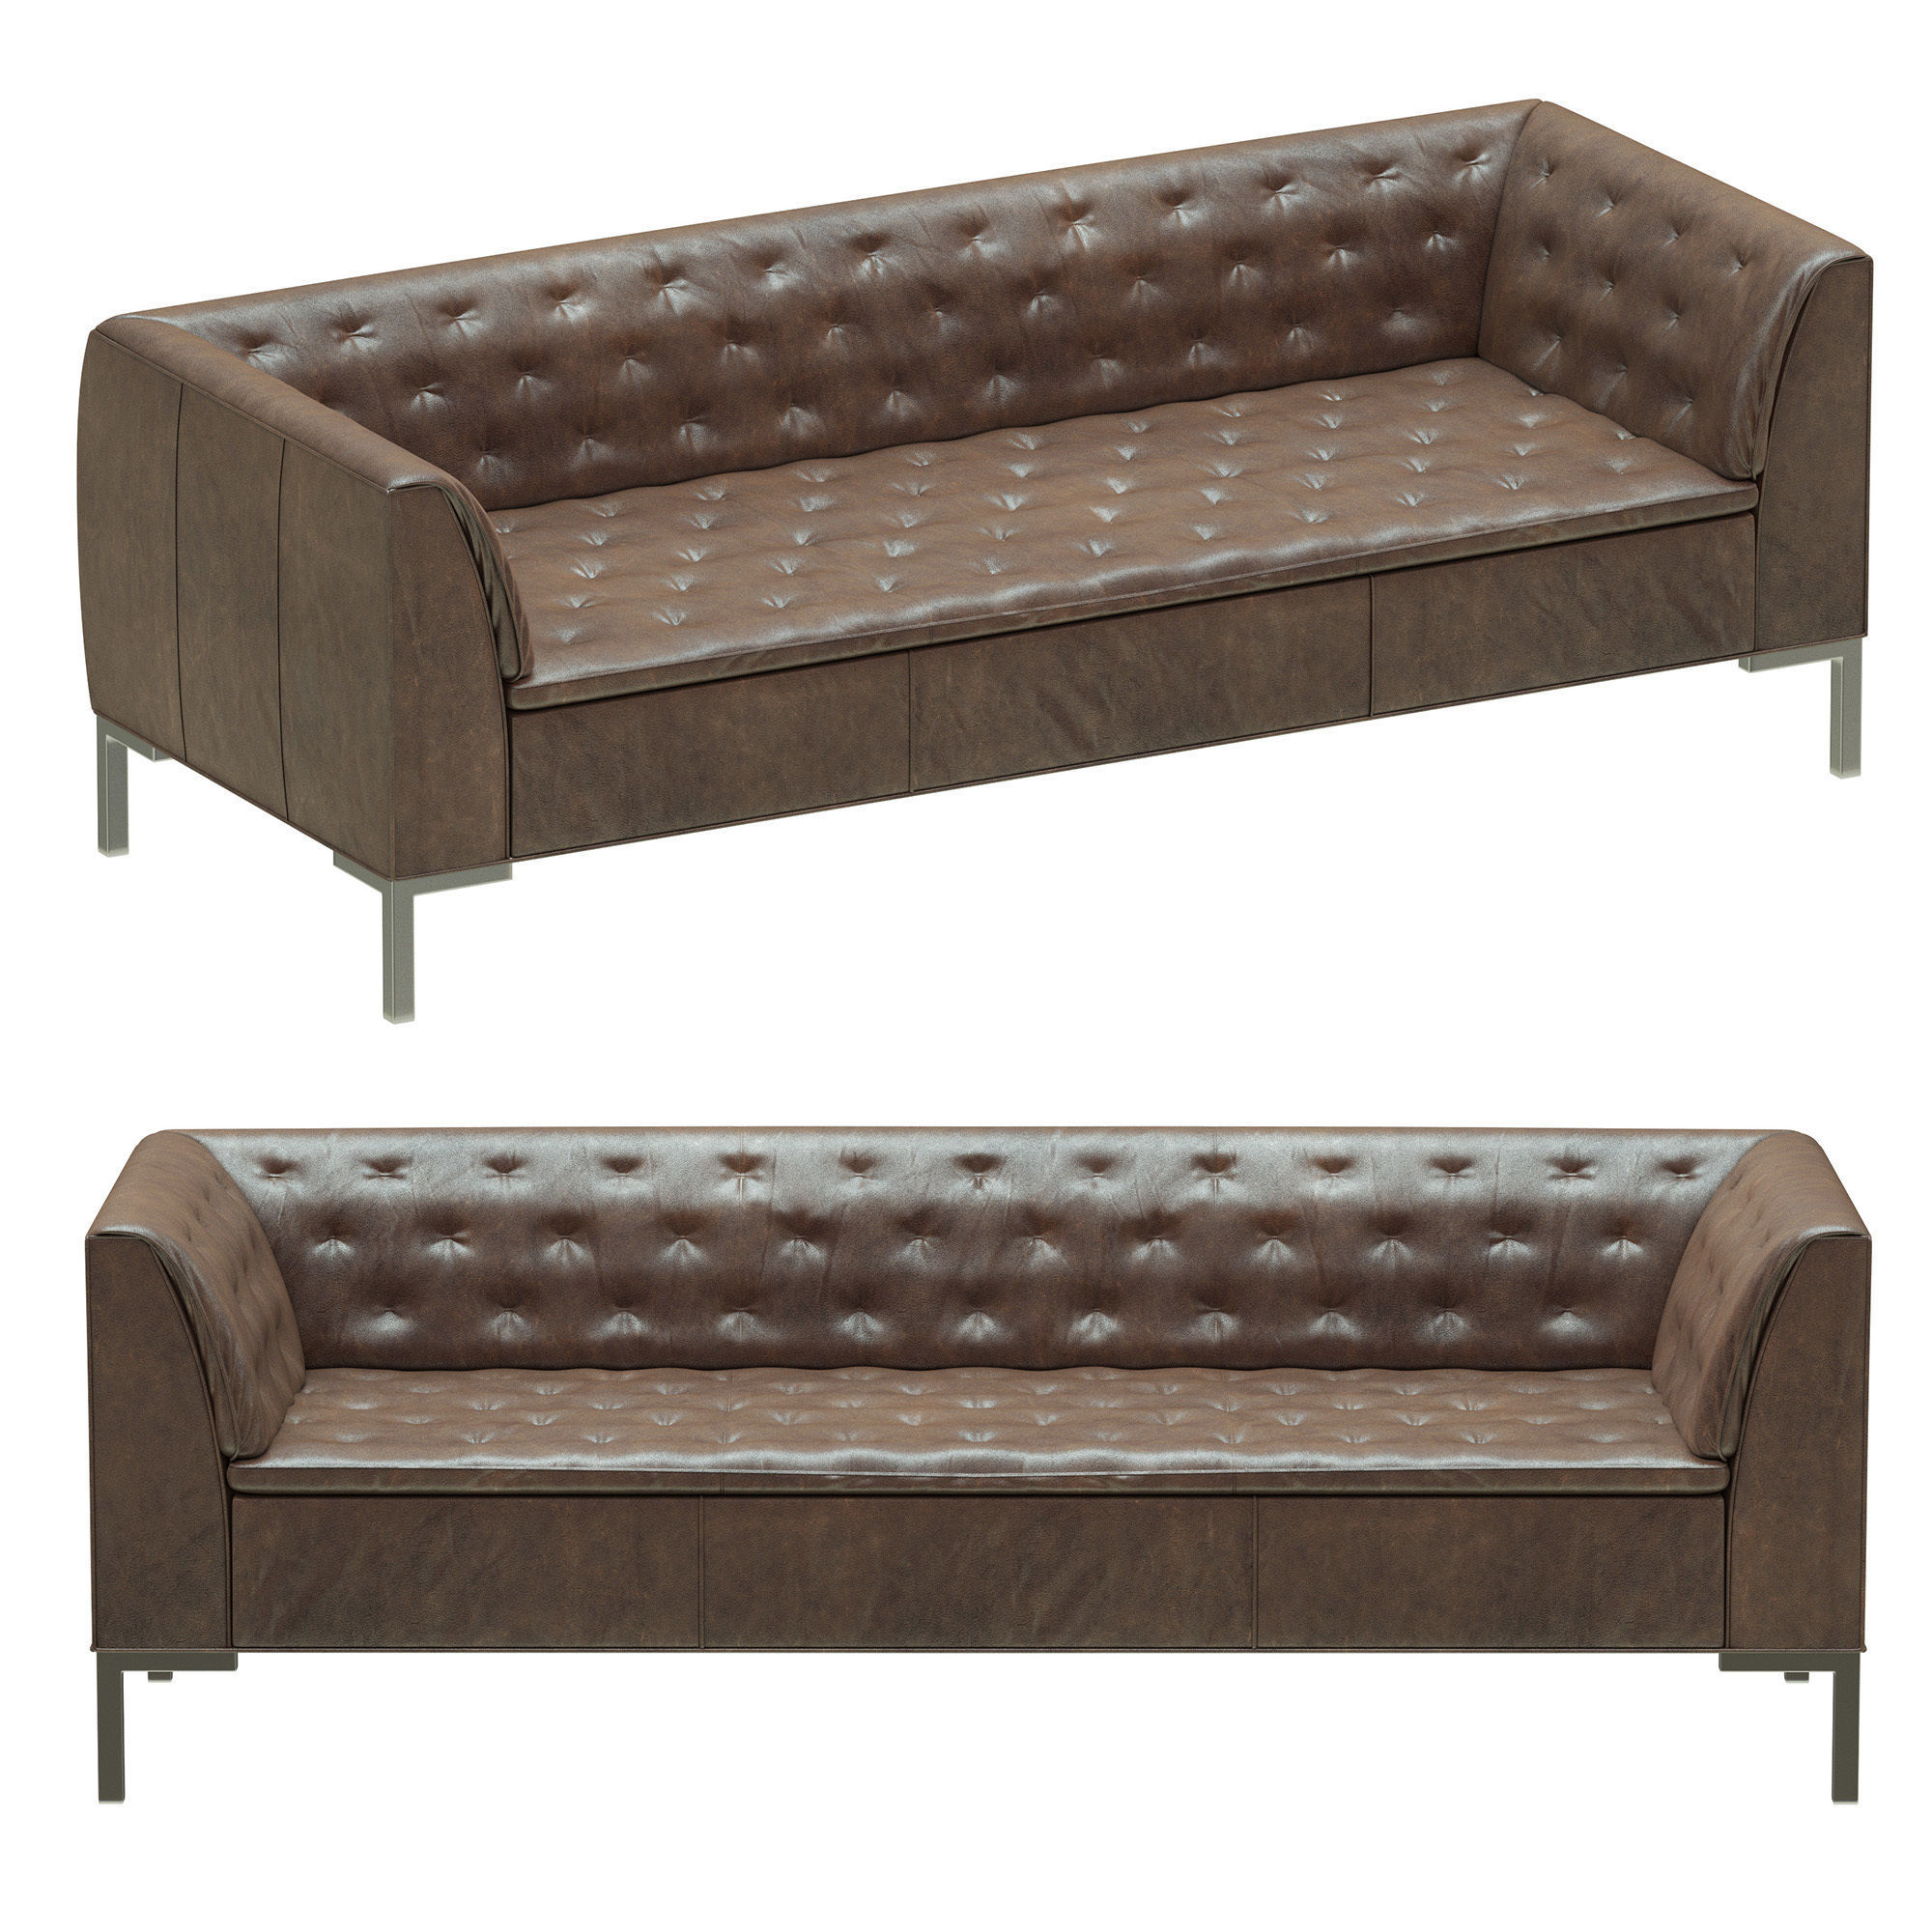 Crate And Barrel Grafton Leather Chesterfield Sofa 3d Model Max Obj Mtl 3ds  Fbx 1 ...